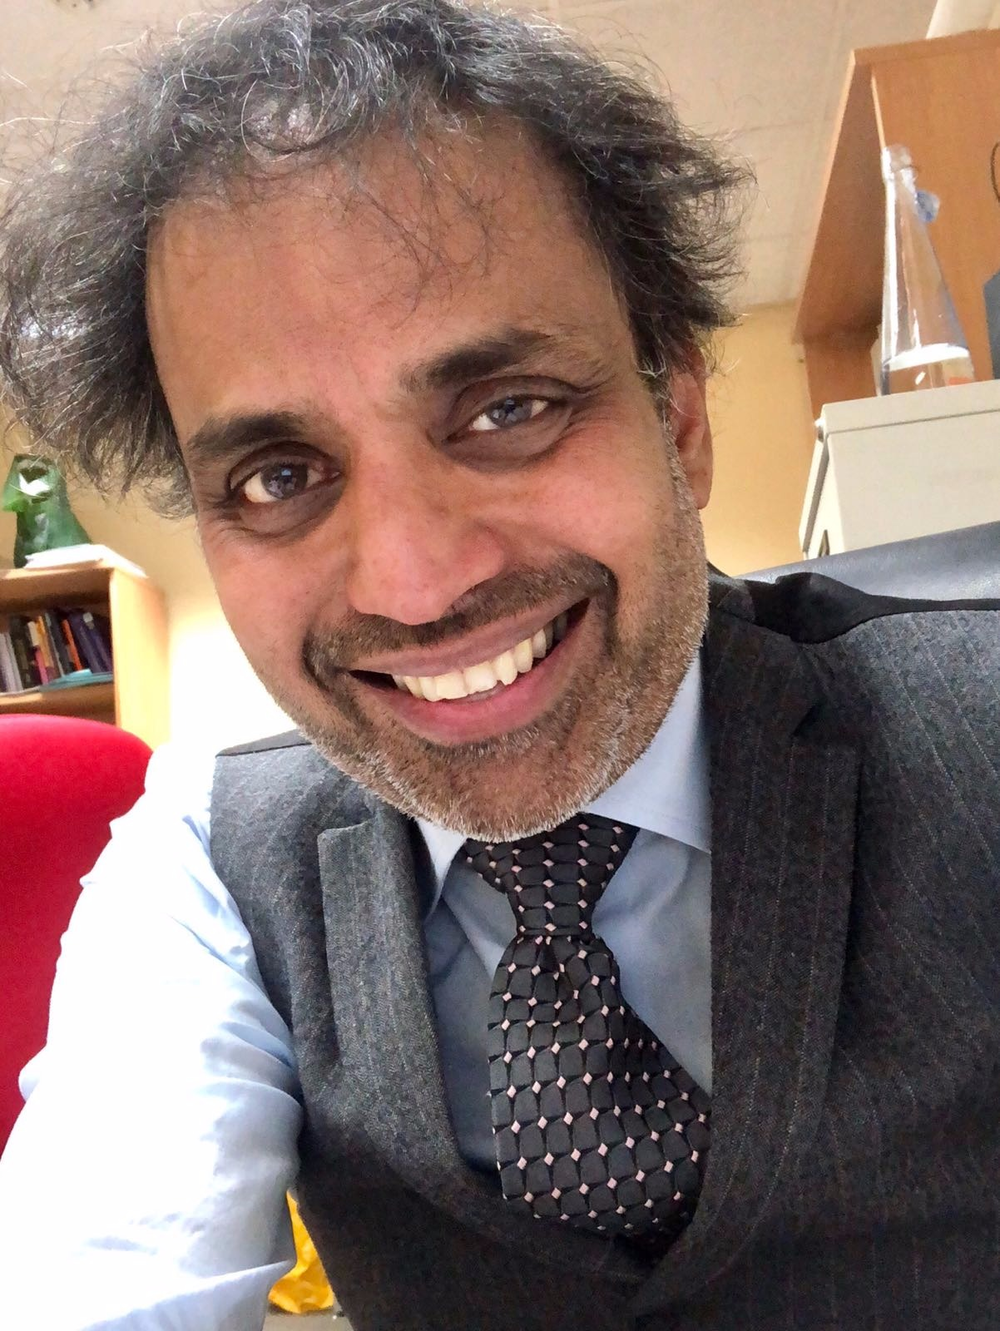 Dr Rajiv Mohanraj PhD - Rajiv has a sub speciality interest in epilepsy, and runs the Greater Manchester Regional Epilepsy service. He is particularly interested in disorders of consciousness, blackouts, drug resistant epilepsy and surgical treatment of epilepsy.Rajiv has published several peer reviewed articles and book chapters on epilepsy. He is a member of the Association of British Neurologists and the International League Against Epilepsy. He is also an Honorary Lecturer in Clinical Neurosciences at the University of Manchester.